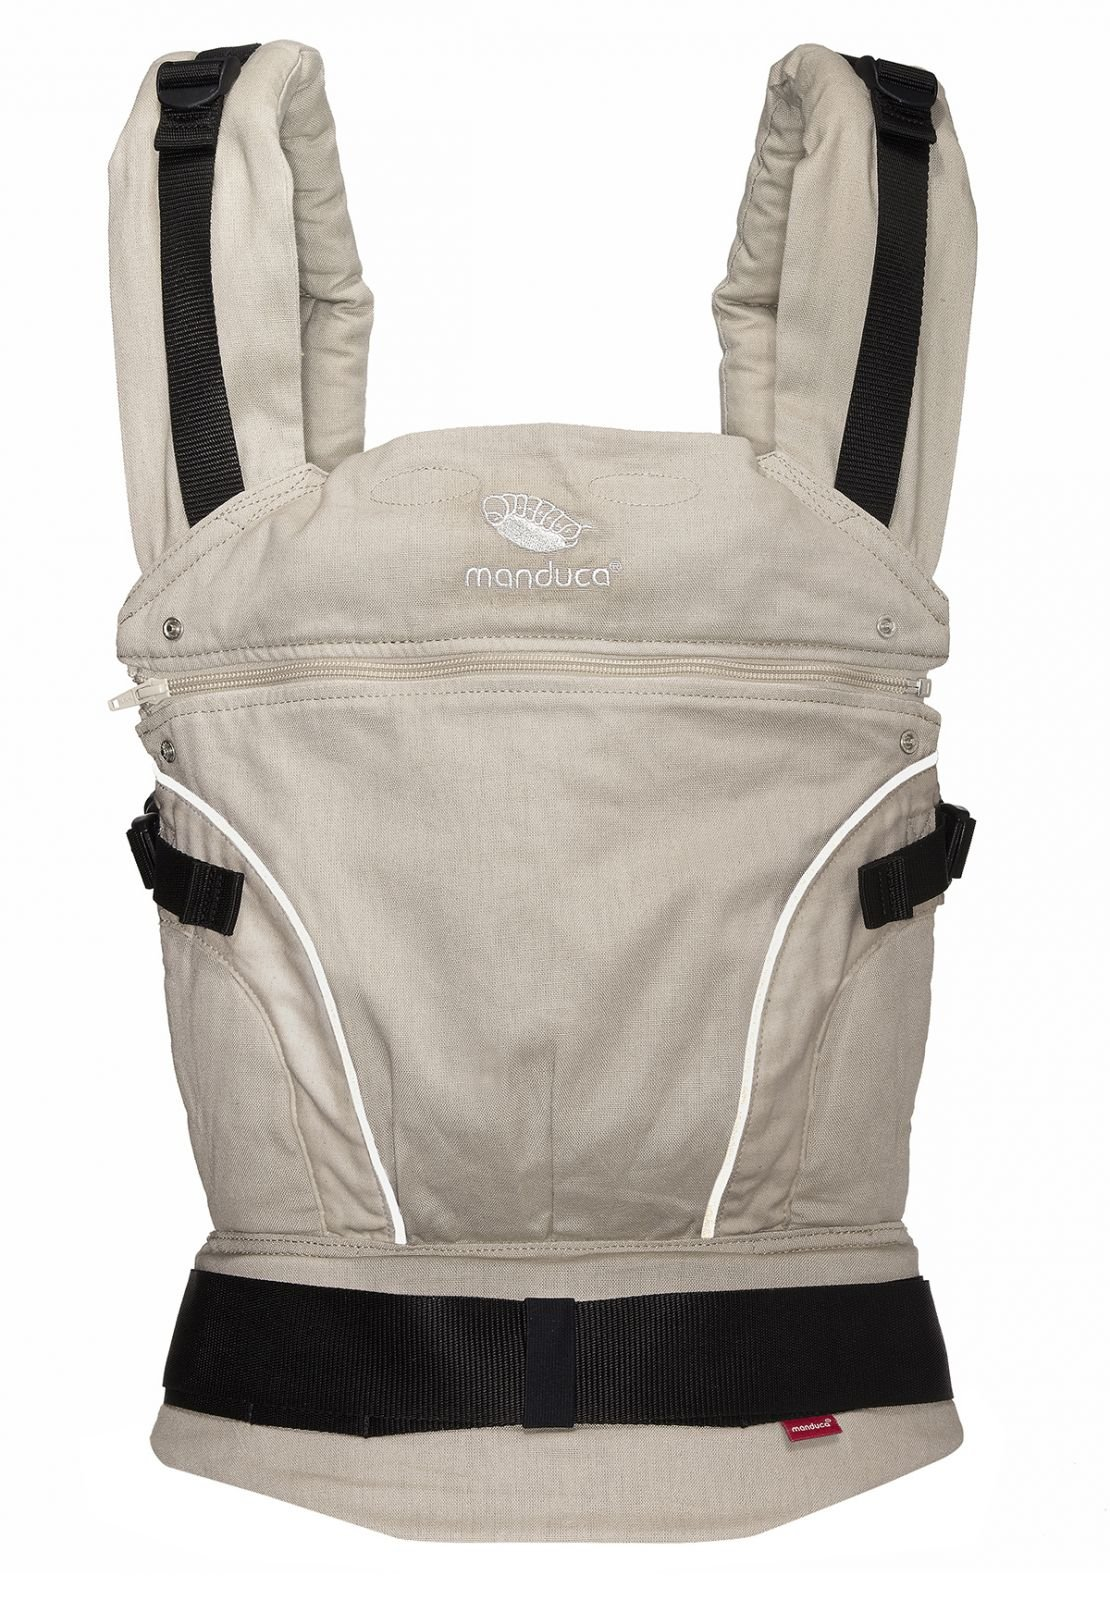 Manduca Baby Carrier Pure Cotton (Desert Sand) Manduca Discontinued model Is no longer produced (since 2017) 3